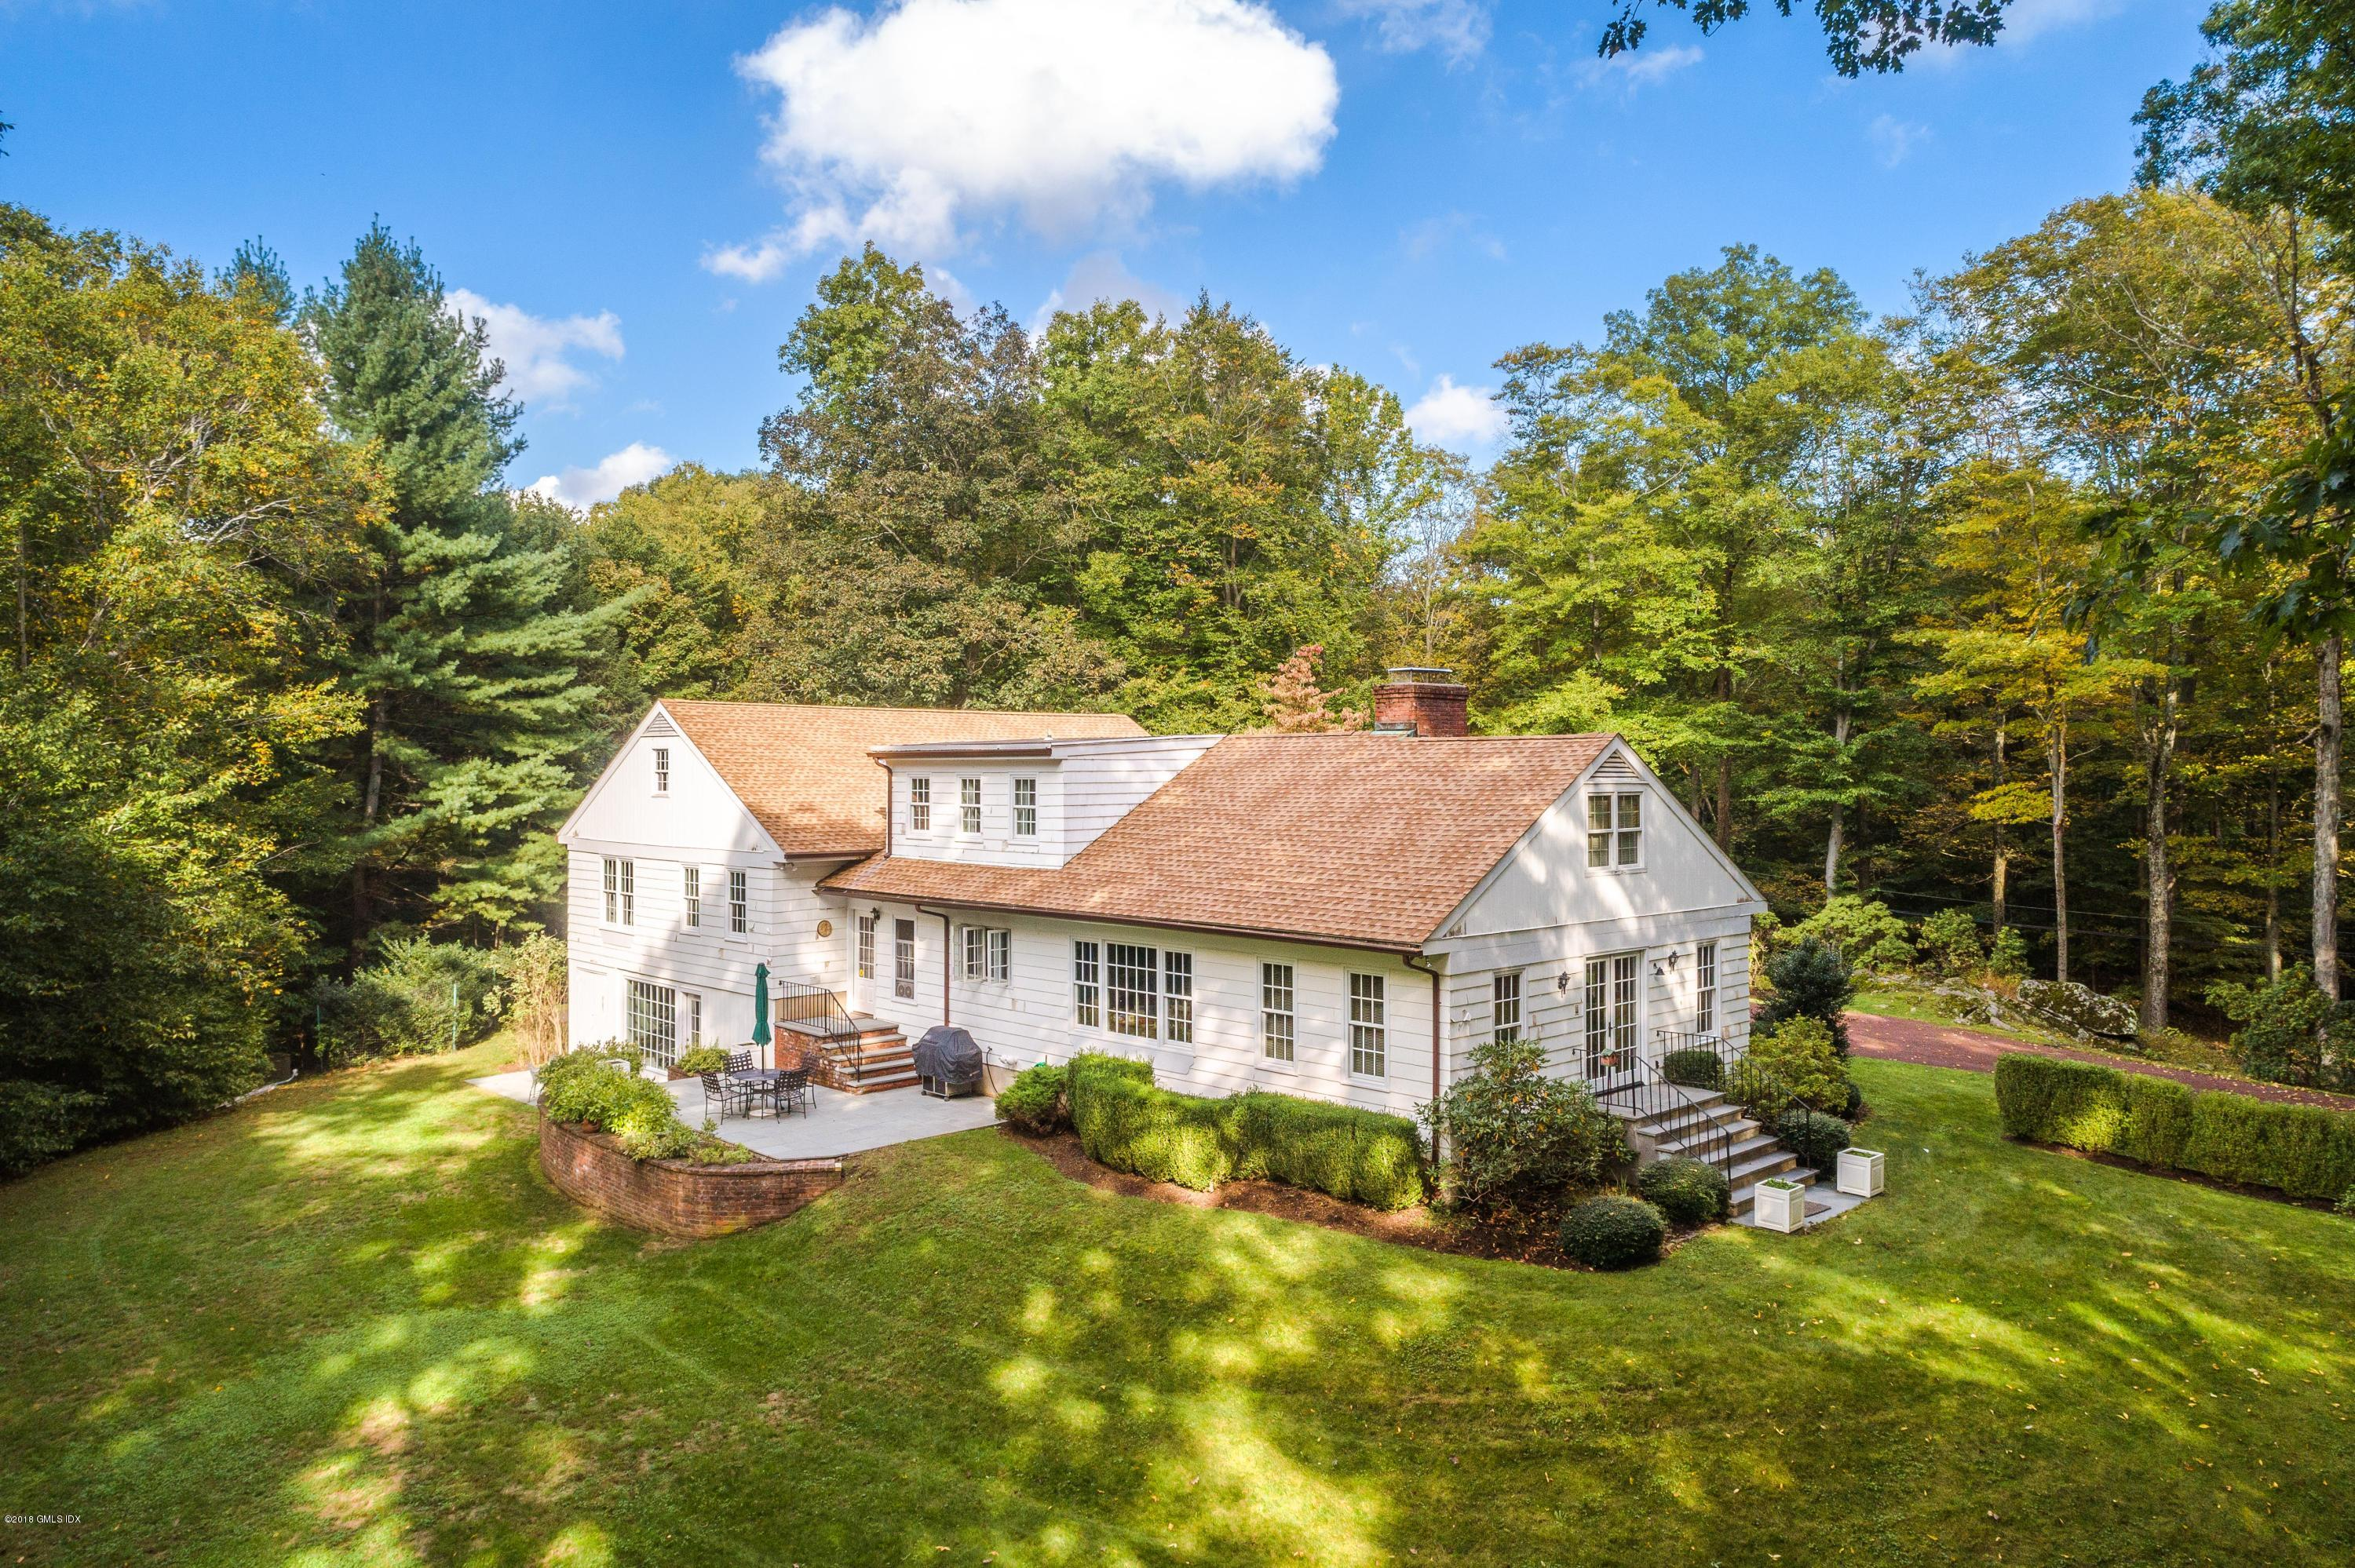 55 Stag Lane,Greenwich,Connecticut 06831,5 Bedrooms Bedrooms,3 BathroomsBathrooms,Single family,Stag,104916